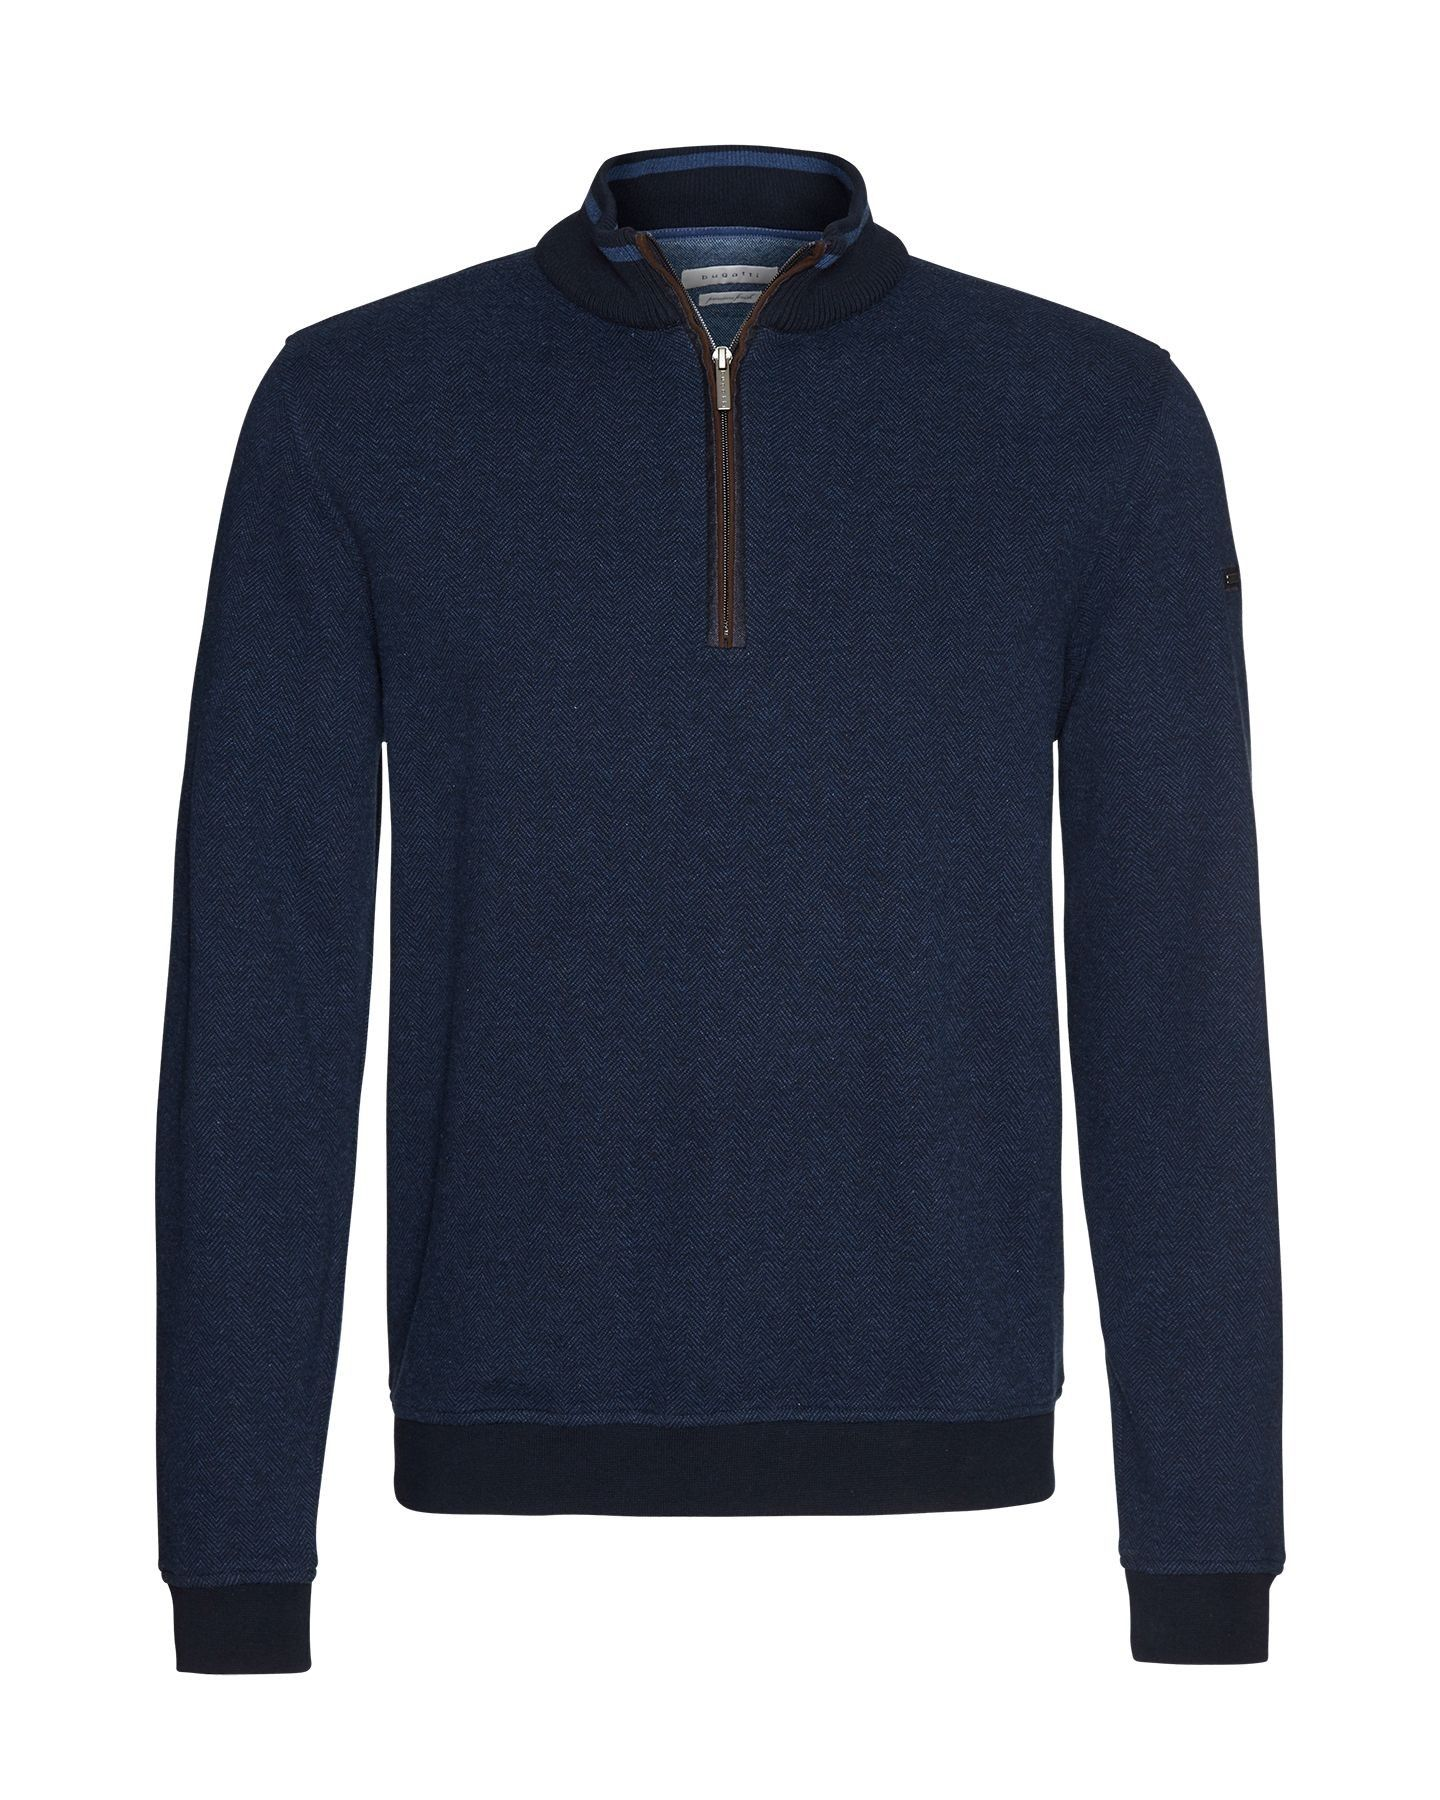 Bugatti - Herren Pullover Sweat-Troyer (Art. Nr.: 25060-8550) – Bild 5